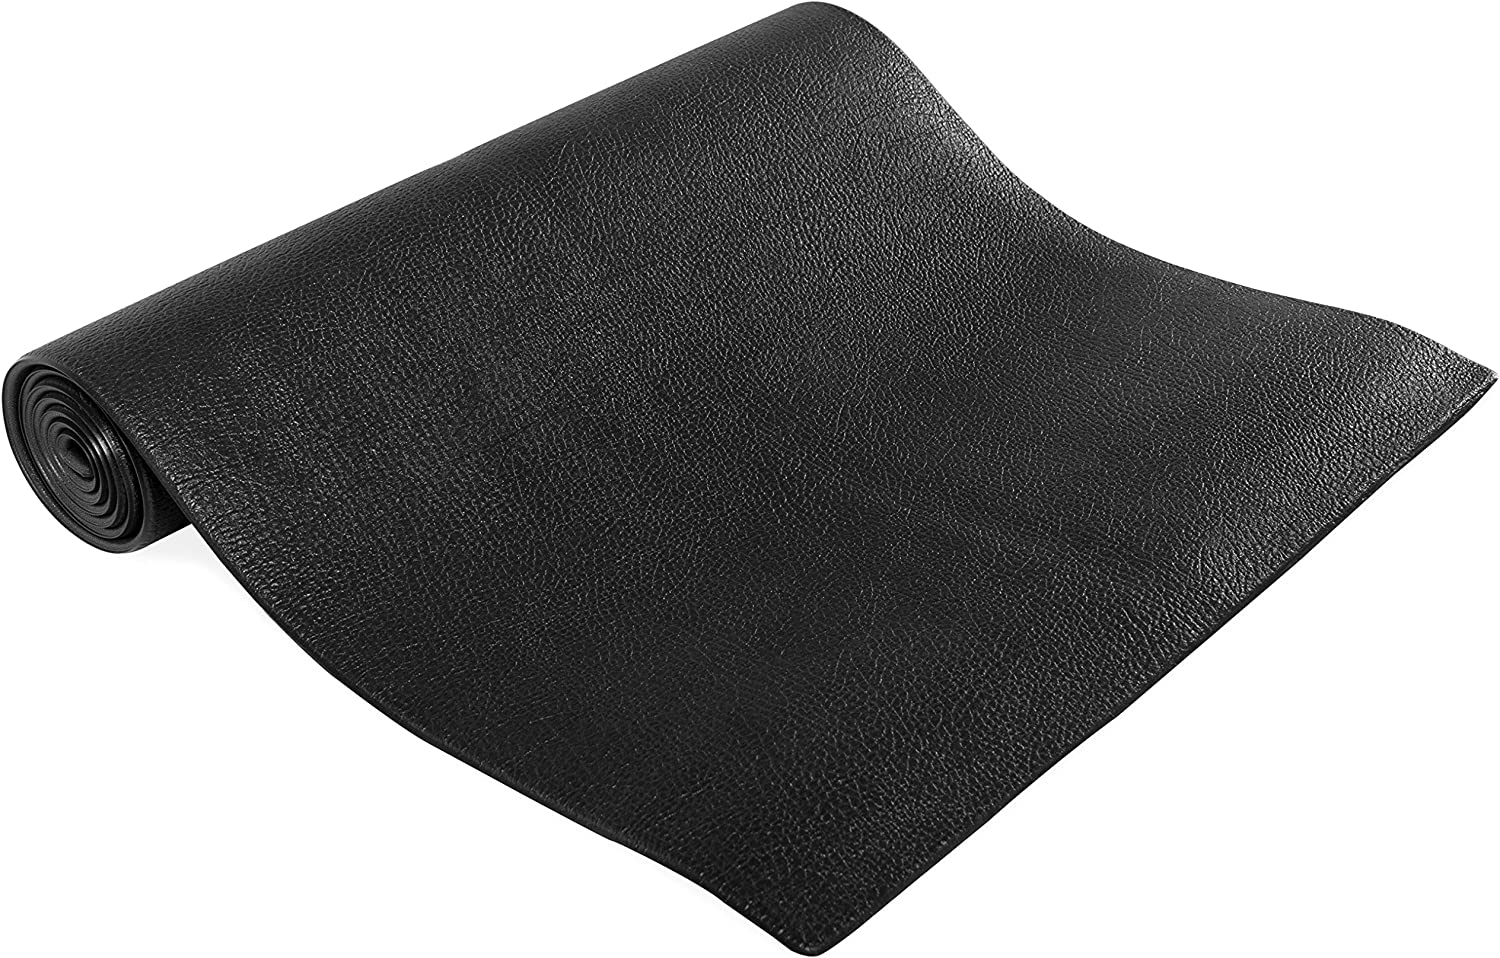 CAP Barbell Premium Spin Bike Mat (3' x 4') : Exercise Mats : Sports & Outdoors